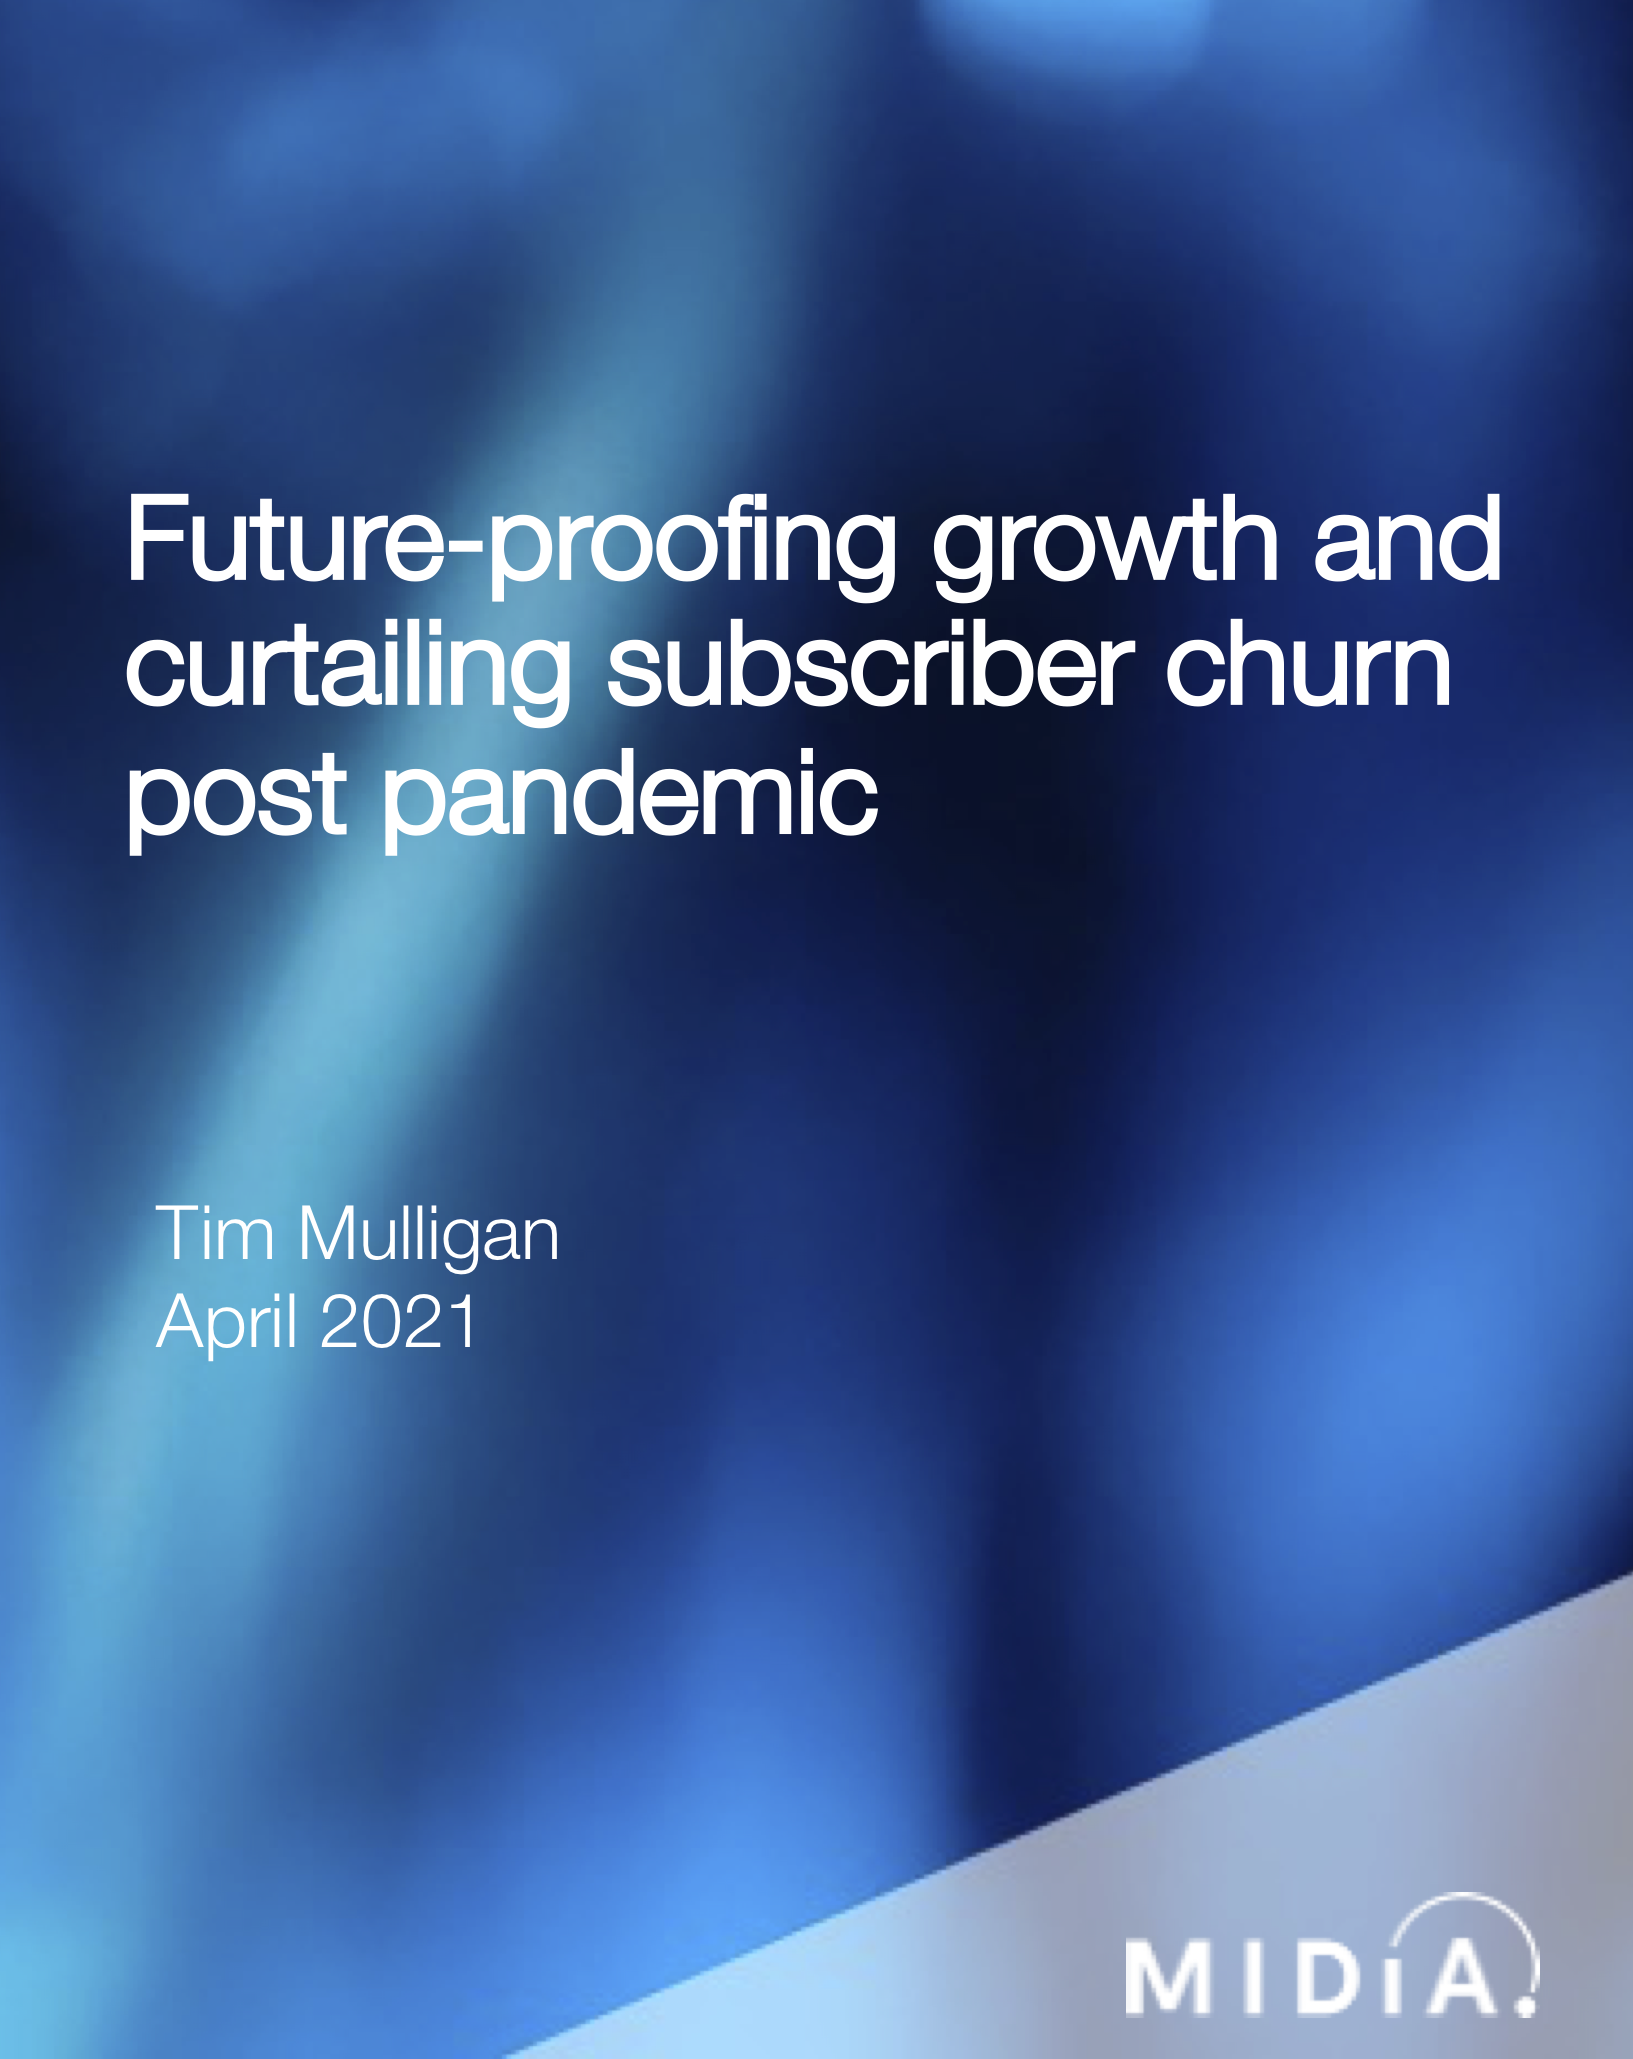 Cover image for Future-proofing growth and curtailing subscriber churn post pandemic